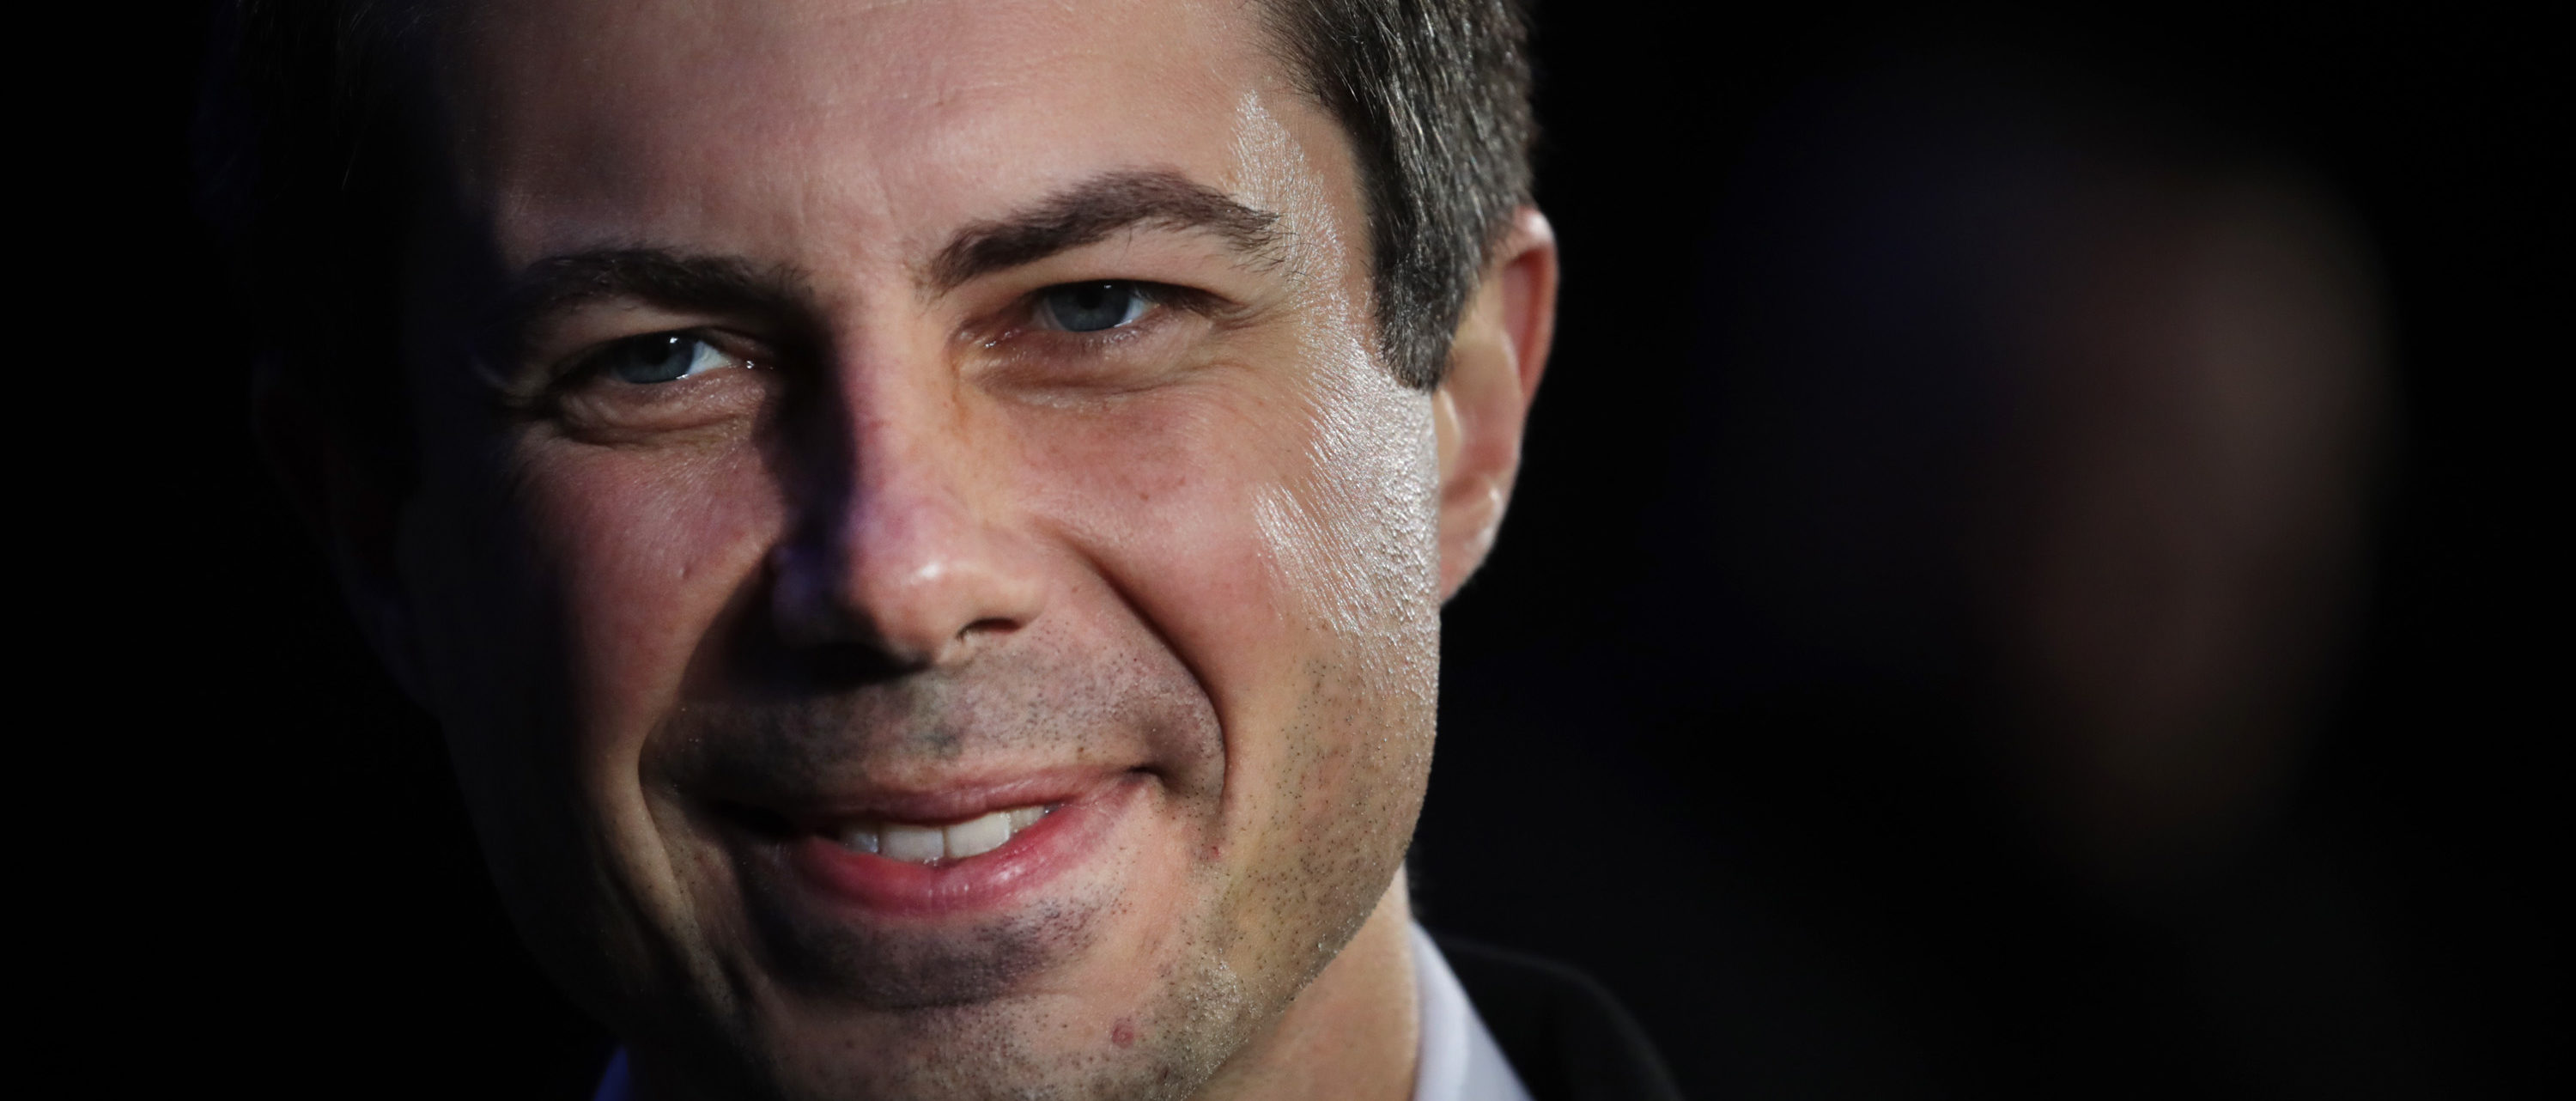 Buttigieg's 'Real Moral Authority' Could Make Him A 'Surprise' Front-Runner, Strategist Says